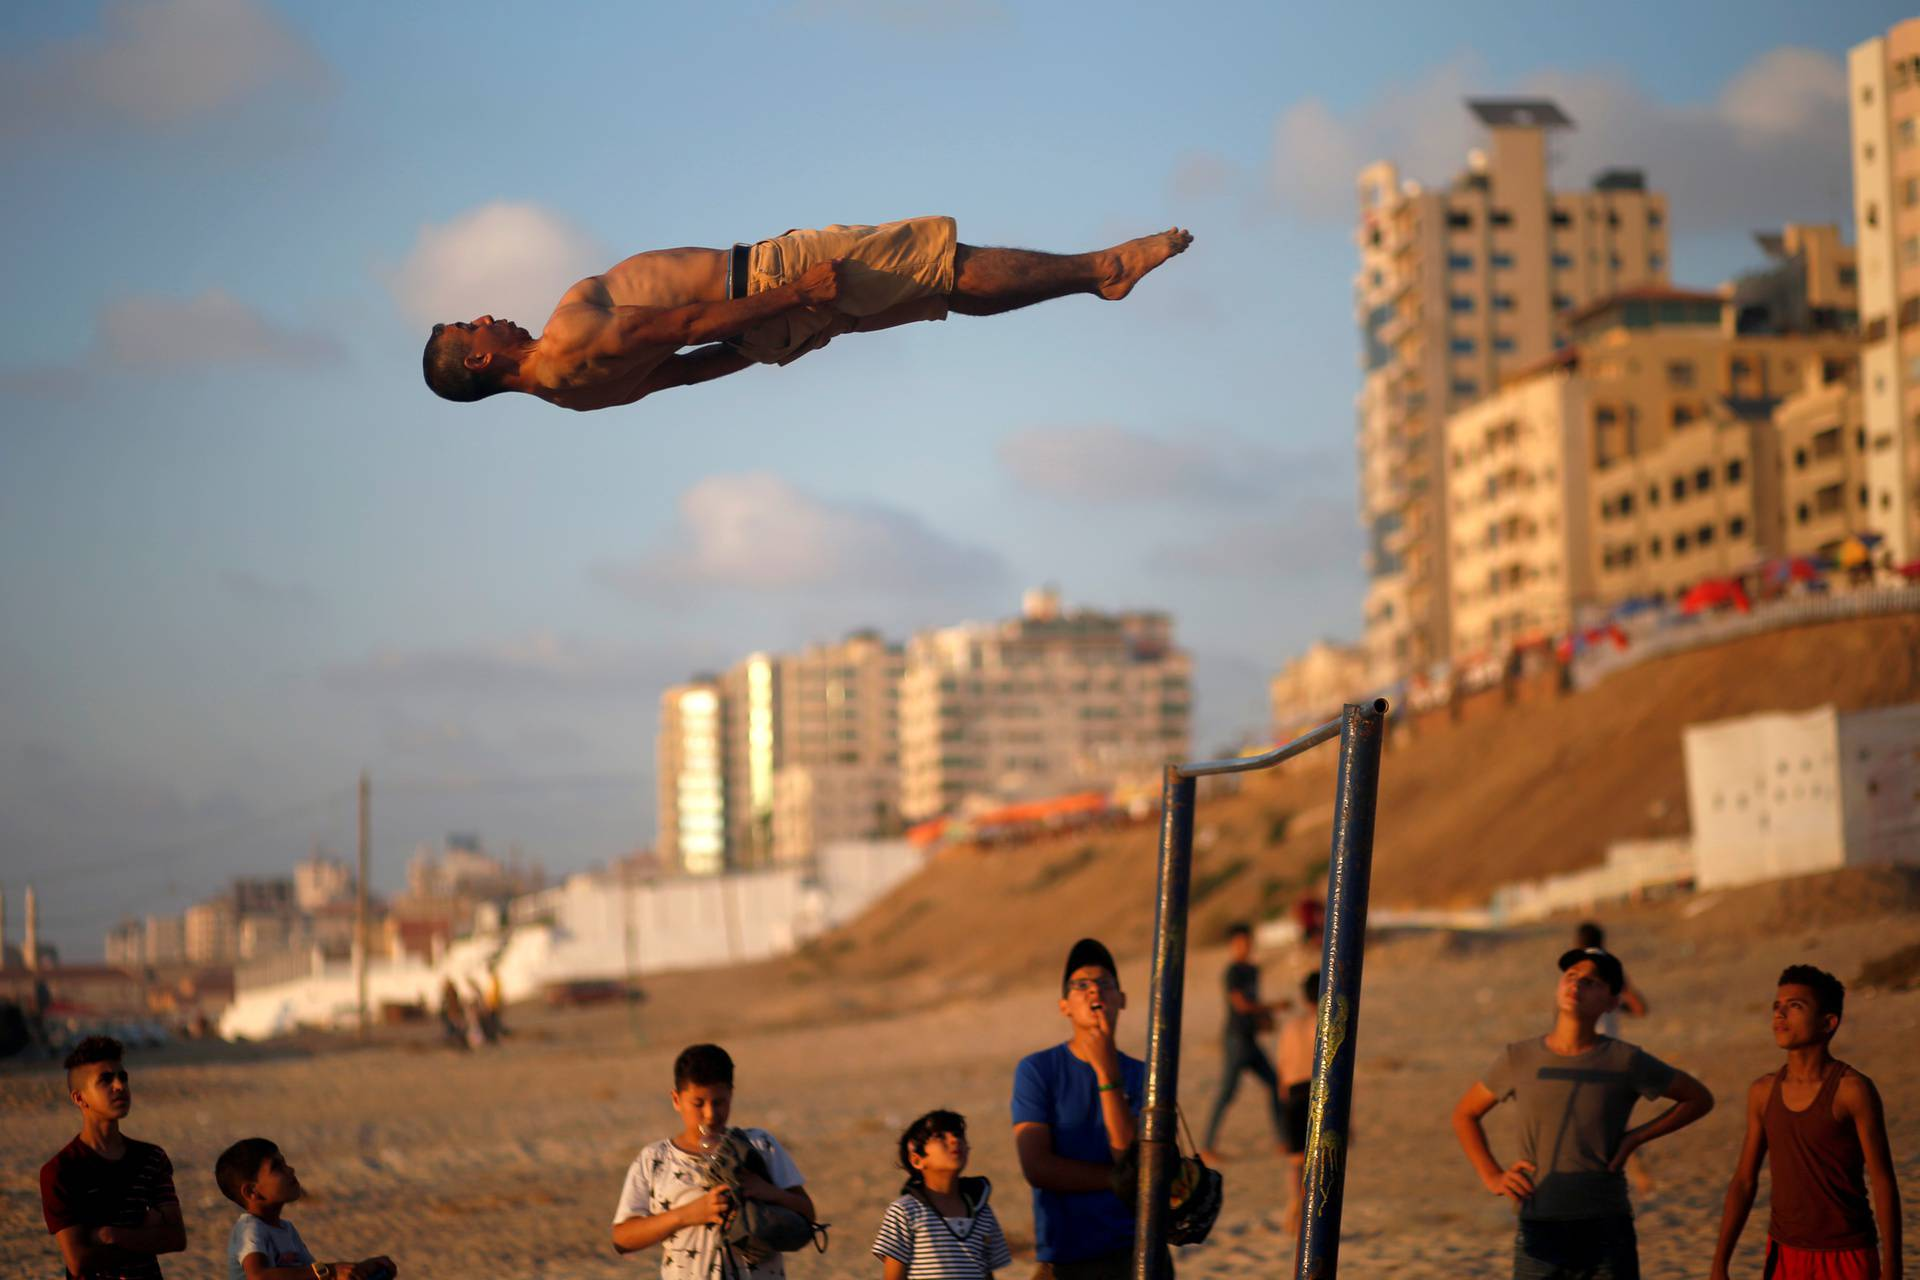 Palestinians demonstrate their parkour and street workout skills as COVID-19 restrictions ease in Gaza City